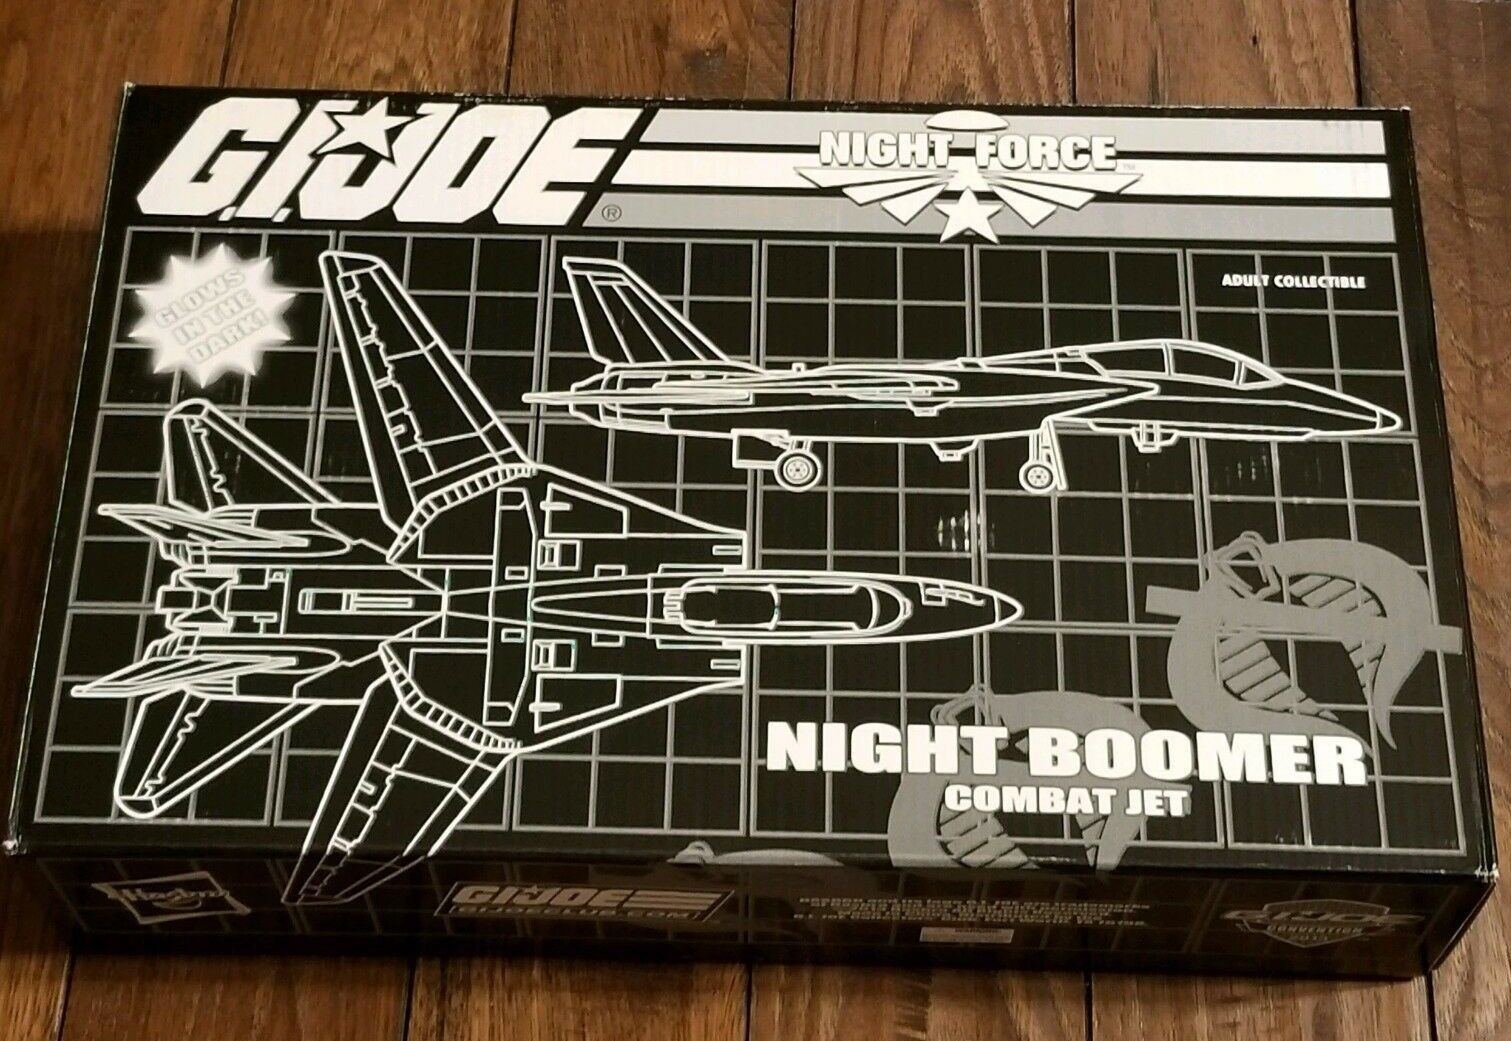 Gi Joe Club Exclusivo Noche Force 2013 Noche Boomer Combate Jet-1989 Reedición